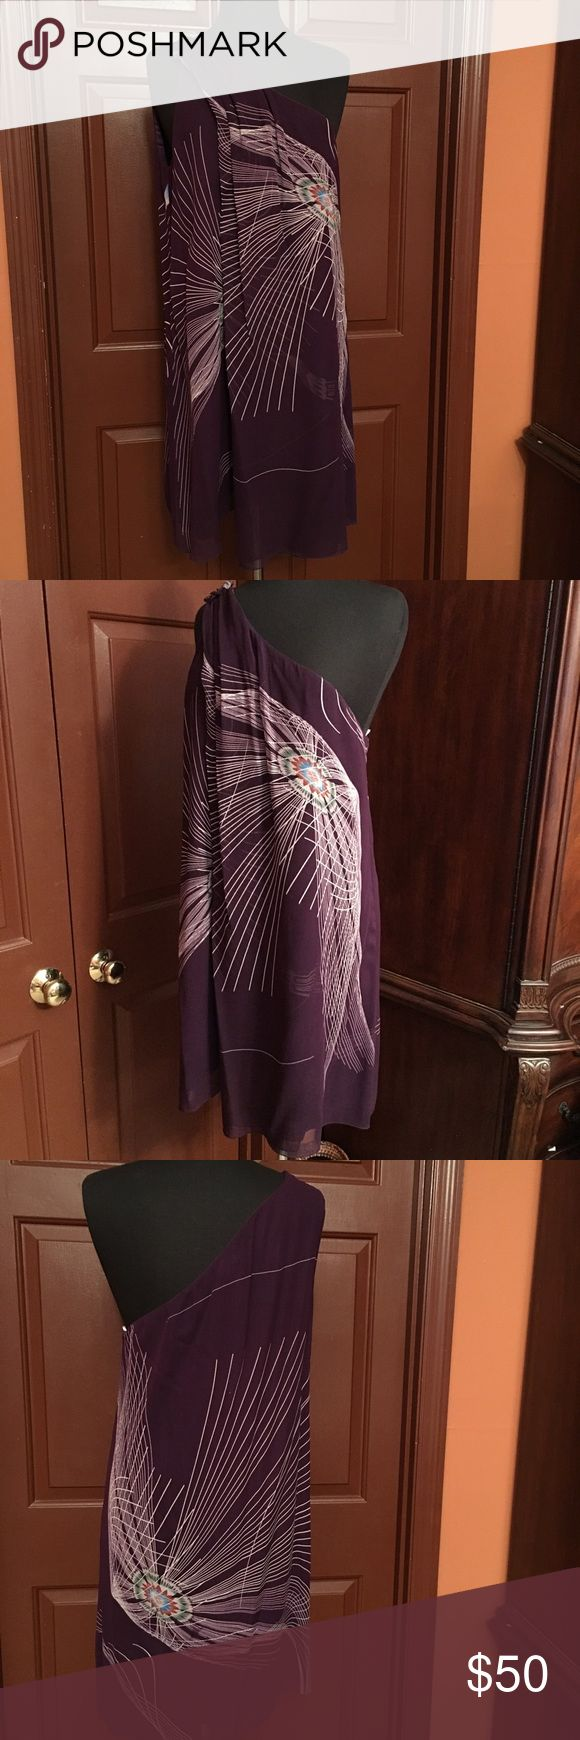 Max Studio by Leon Max Silk Limited Edition Dress Gorgeous one shoulder purple 100% silk dress by LEON MAX COLLECTION for Max Studio, size XL, in great condition worn once, dress is lined Max Studio Dresses Midi